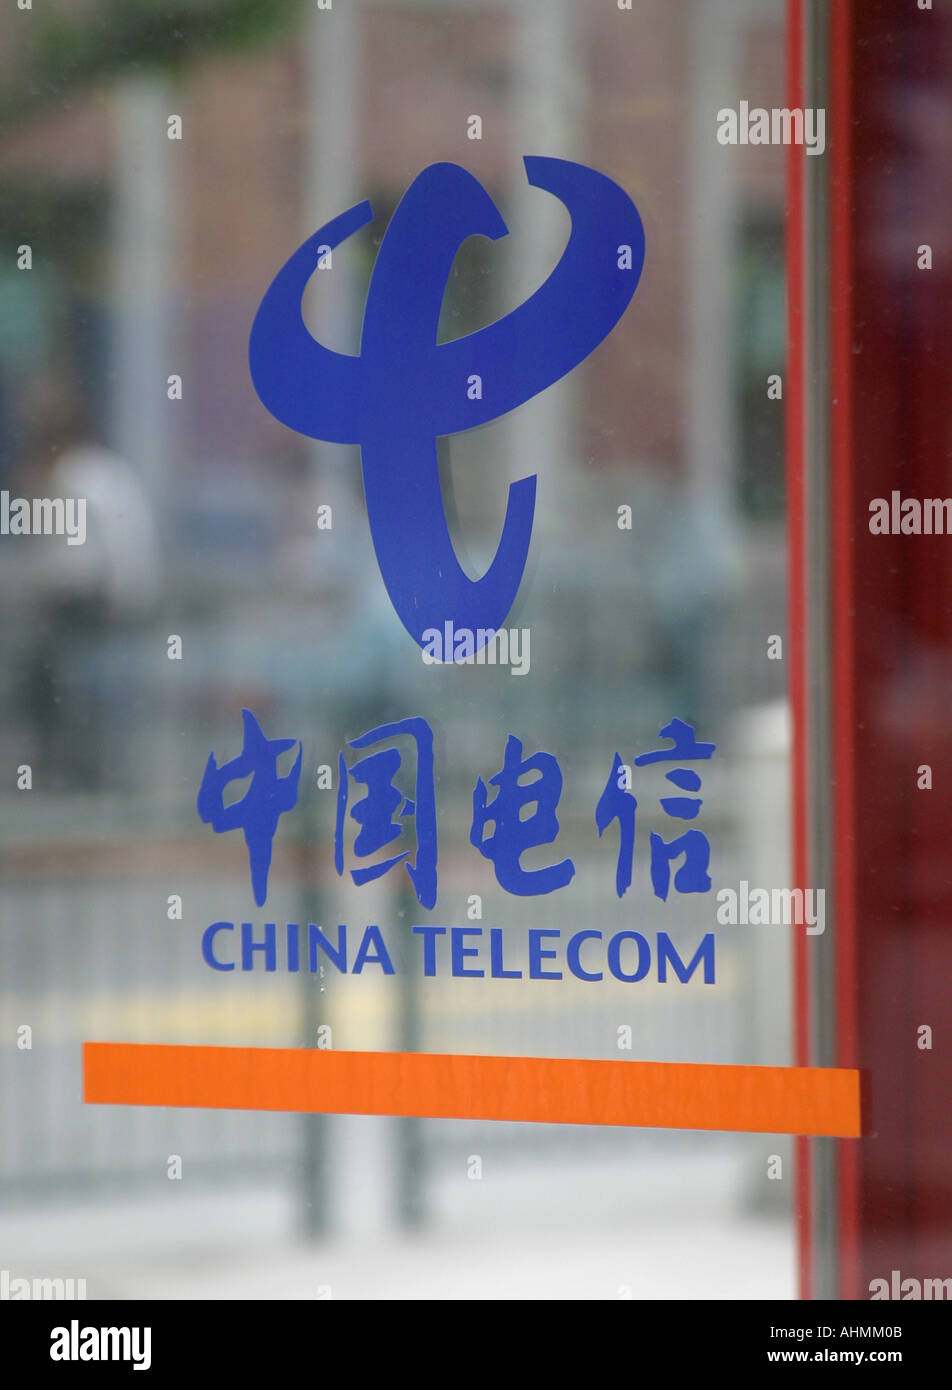 China Telecom logo on the glass door of a phone booth. - Stock Image